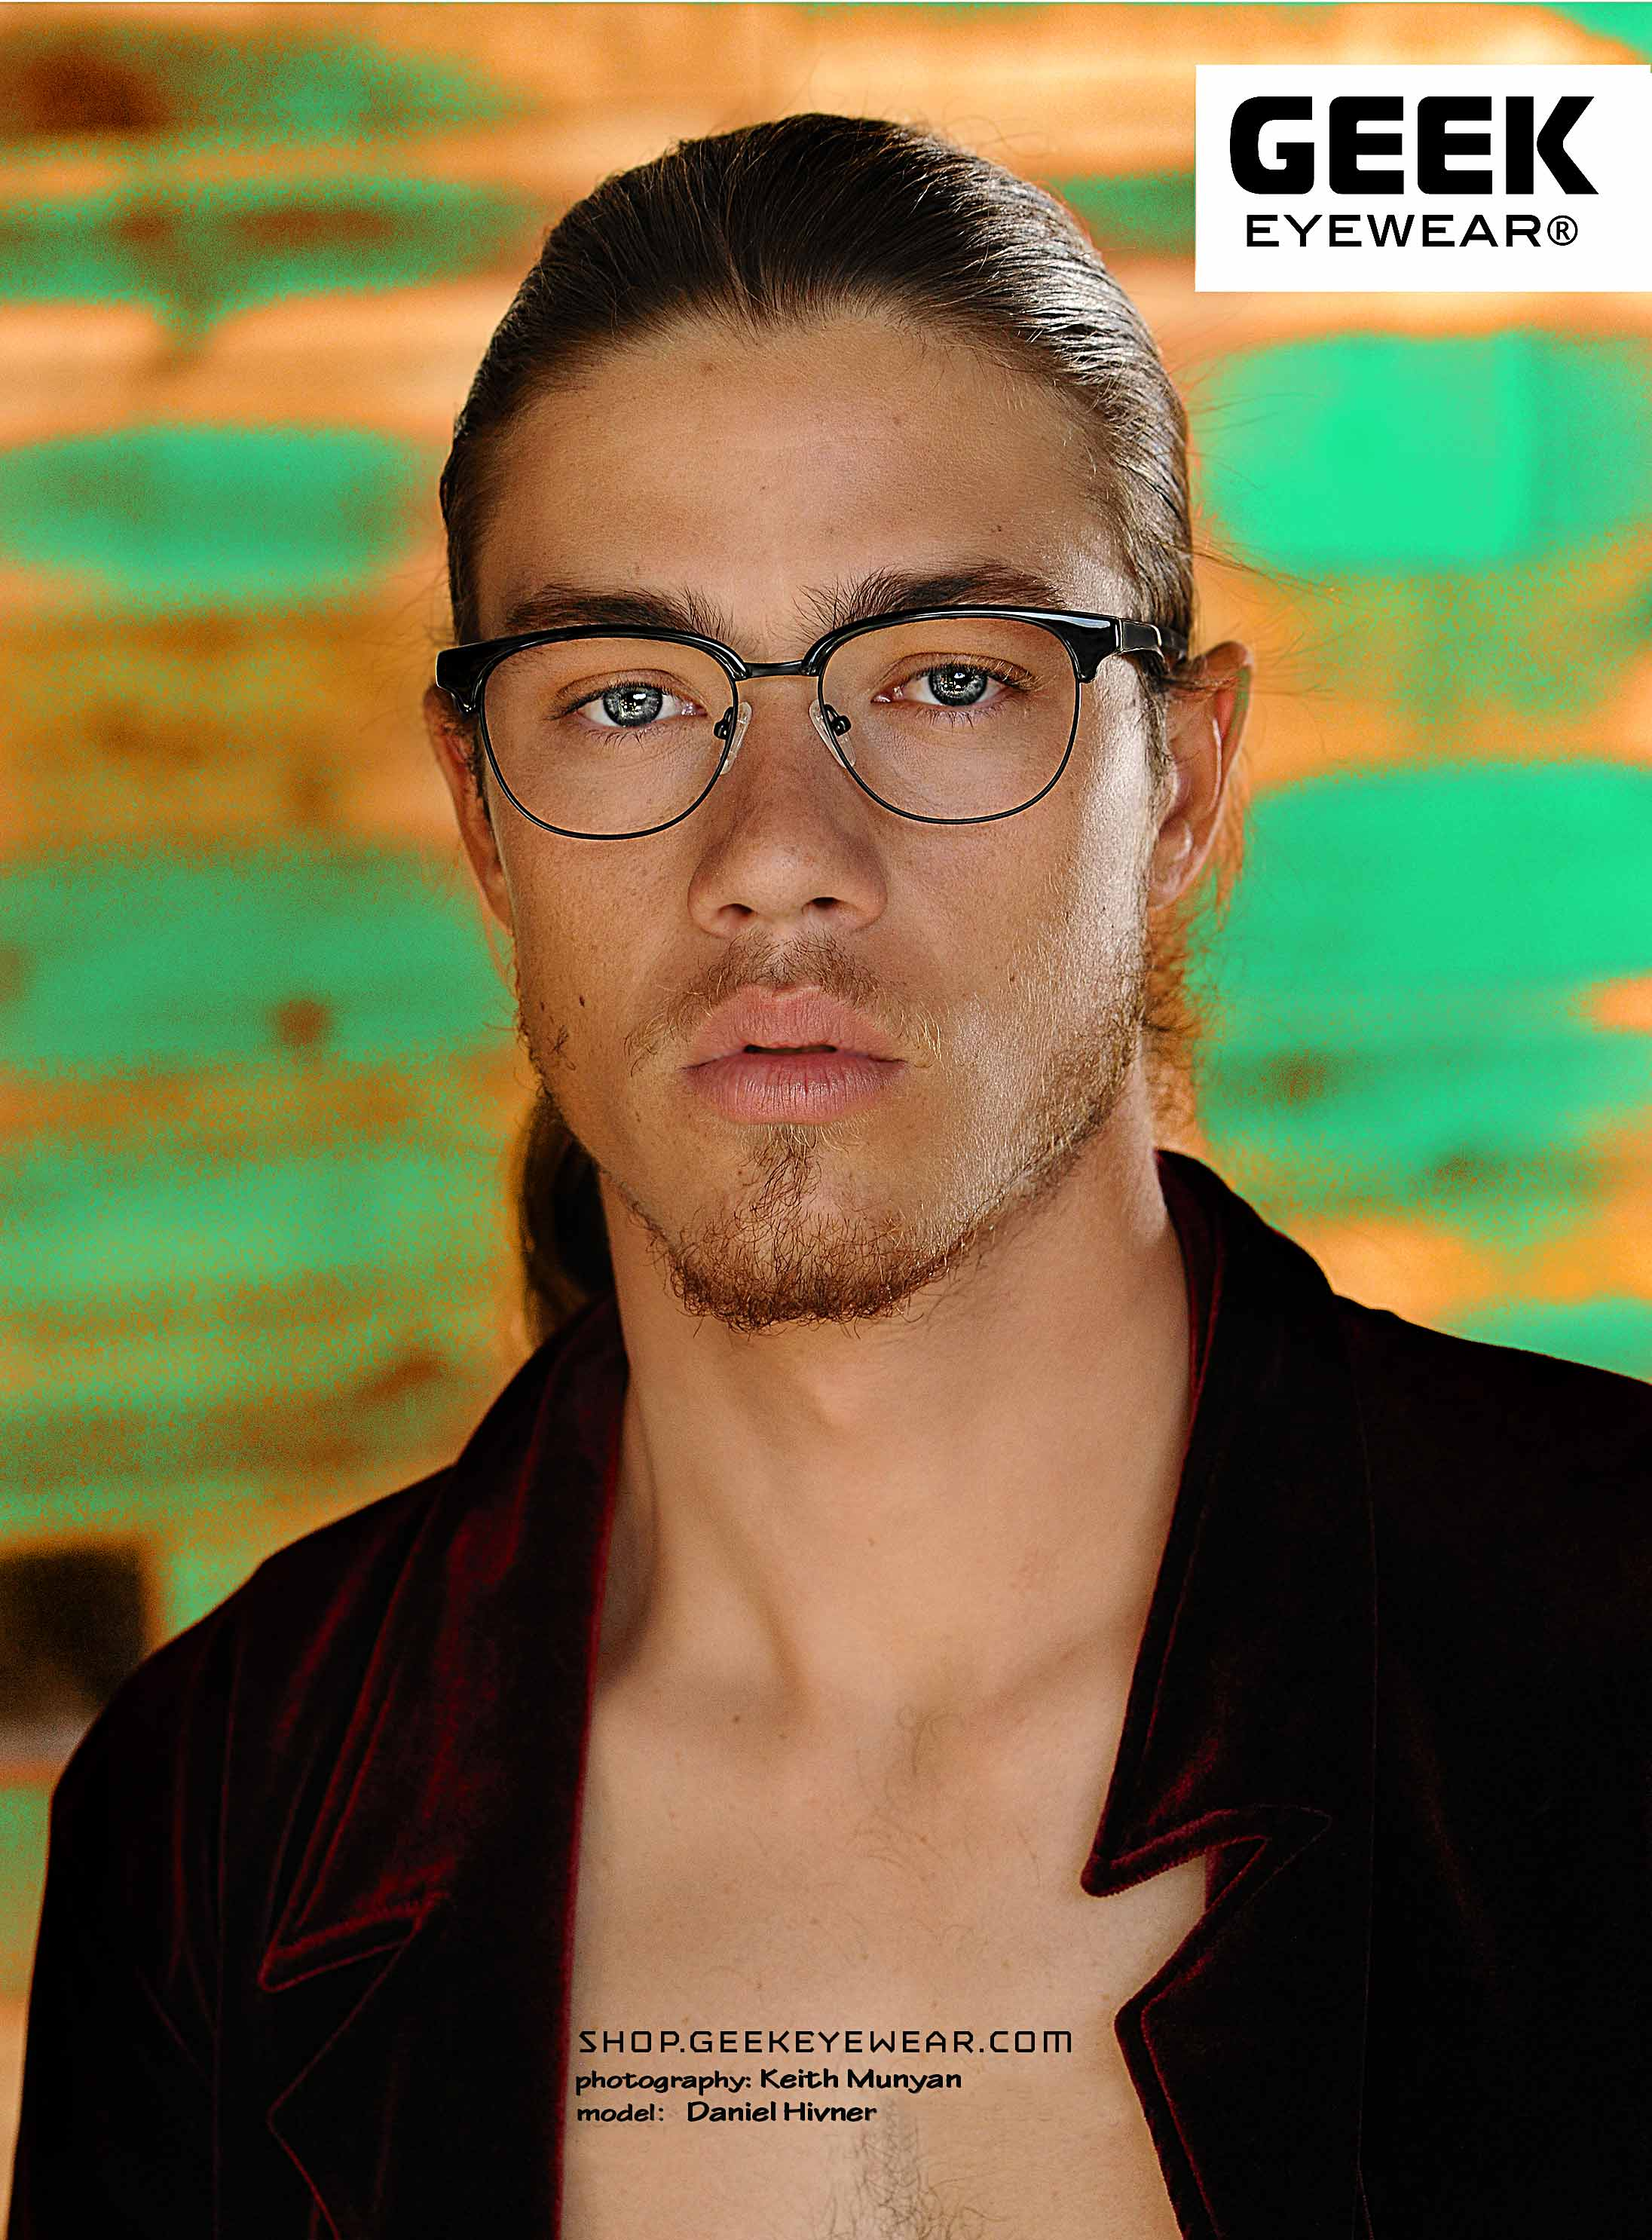 vogue-february-2018-daniel-hivner-geek-eyewear.jpg